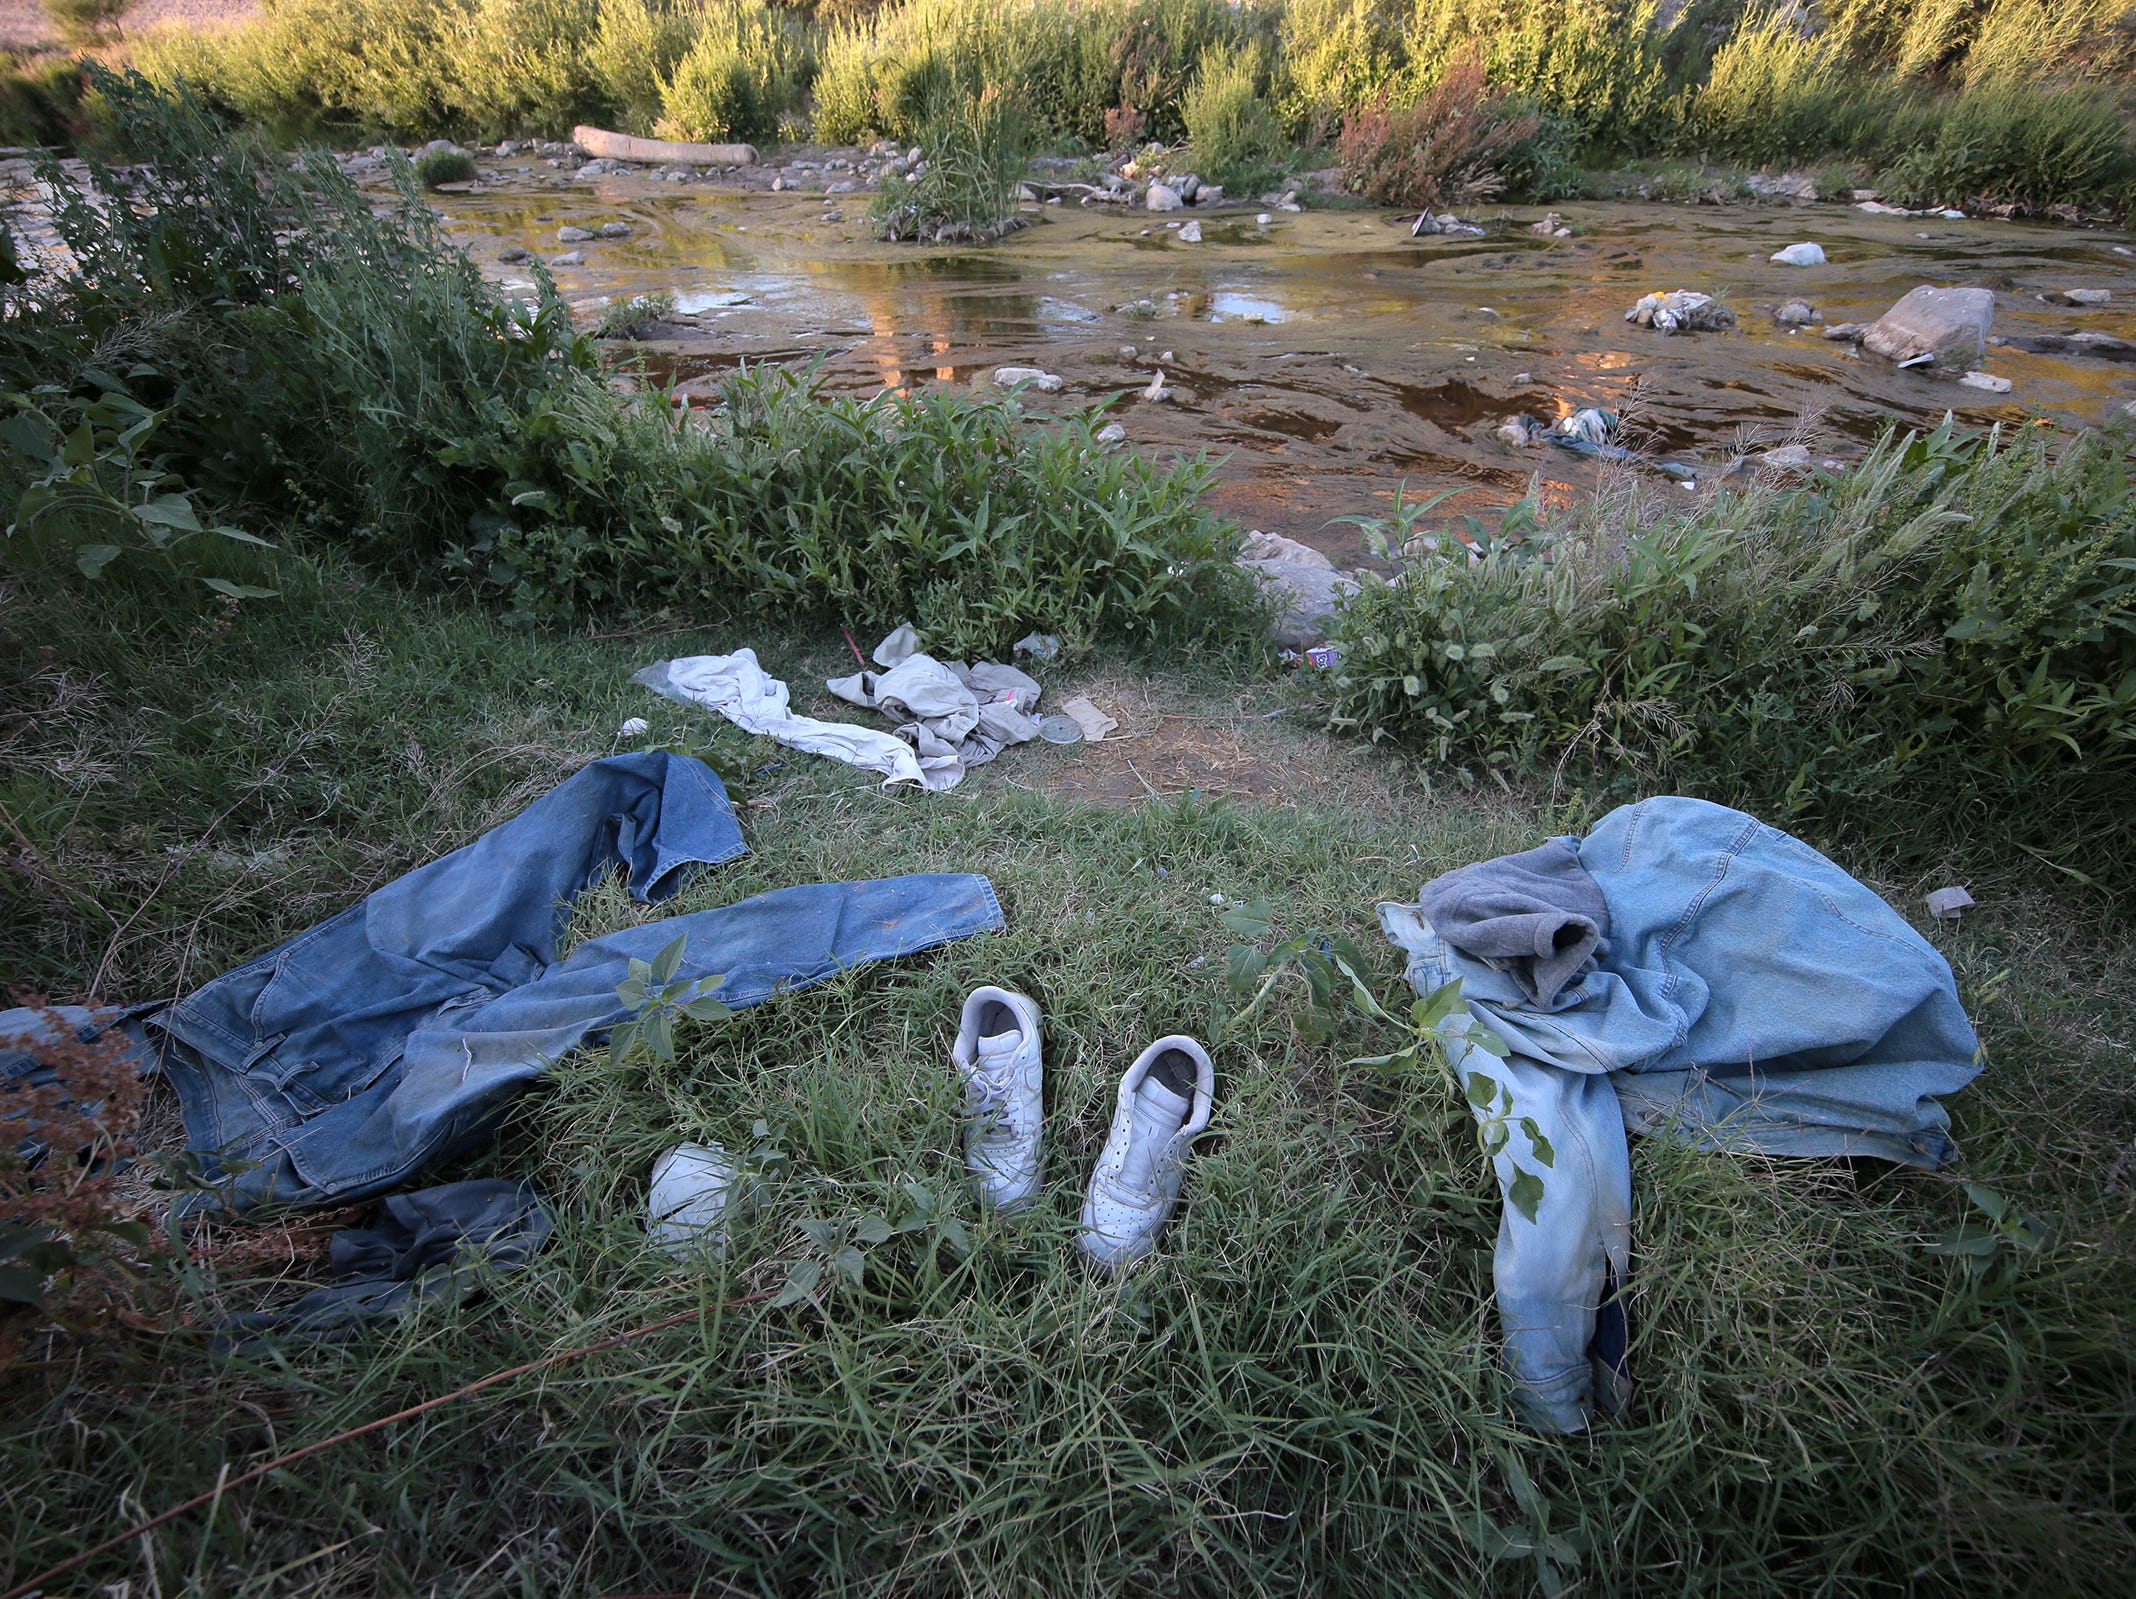 Clothing left behind by migrants litter the banks of the Rio Grande between El Paso and Juarez.